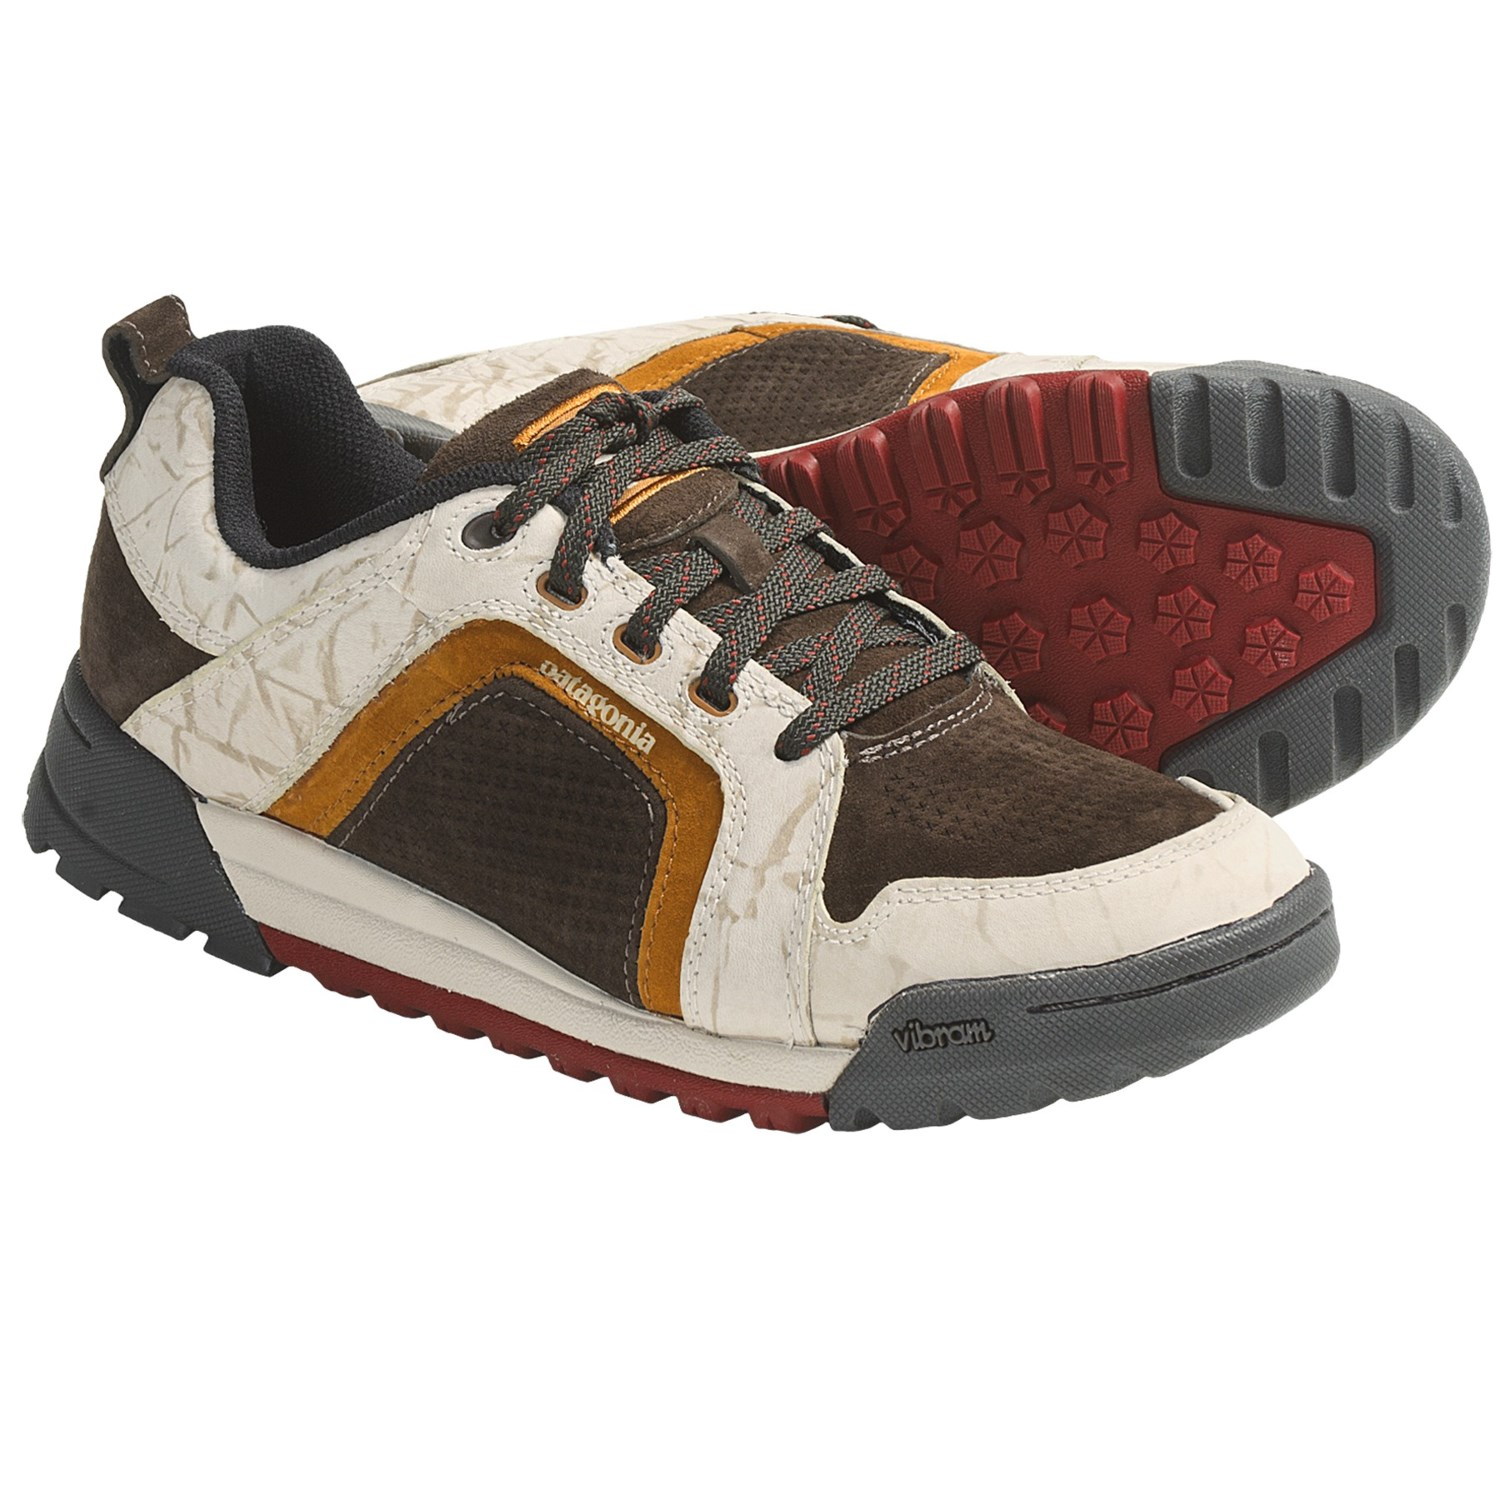 patagonia snoutler shoes leather recycled materials